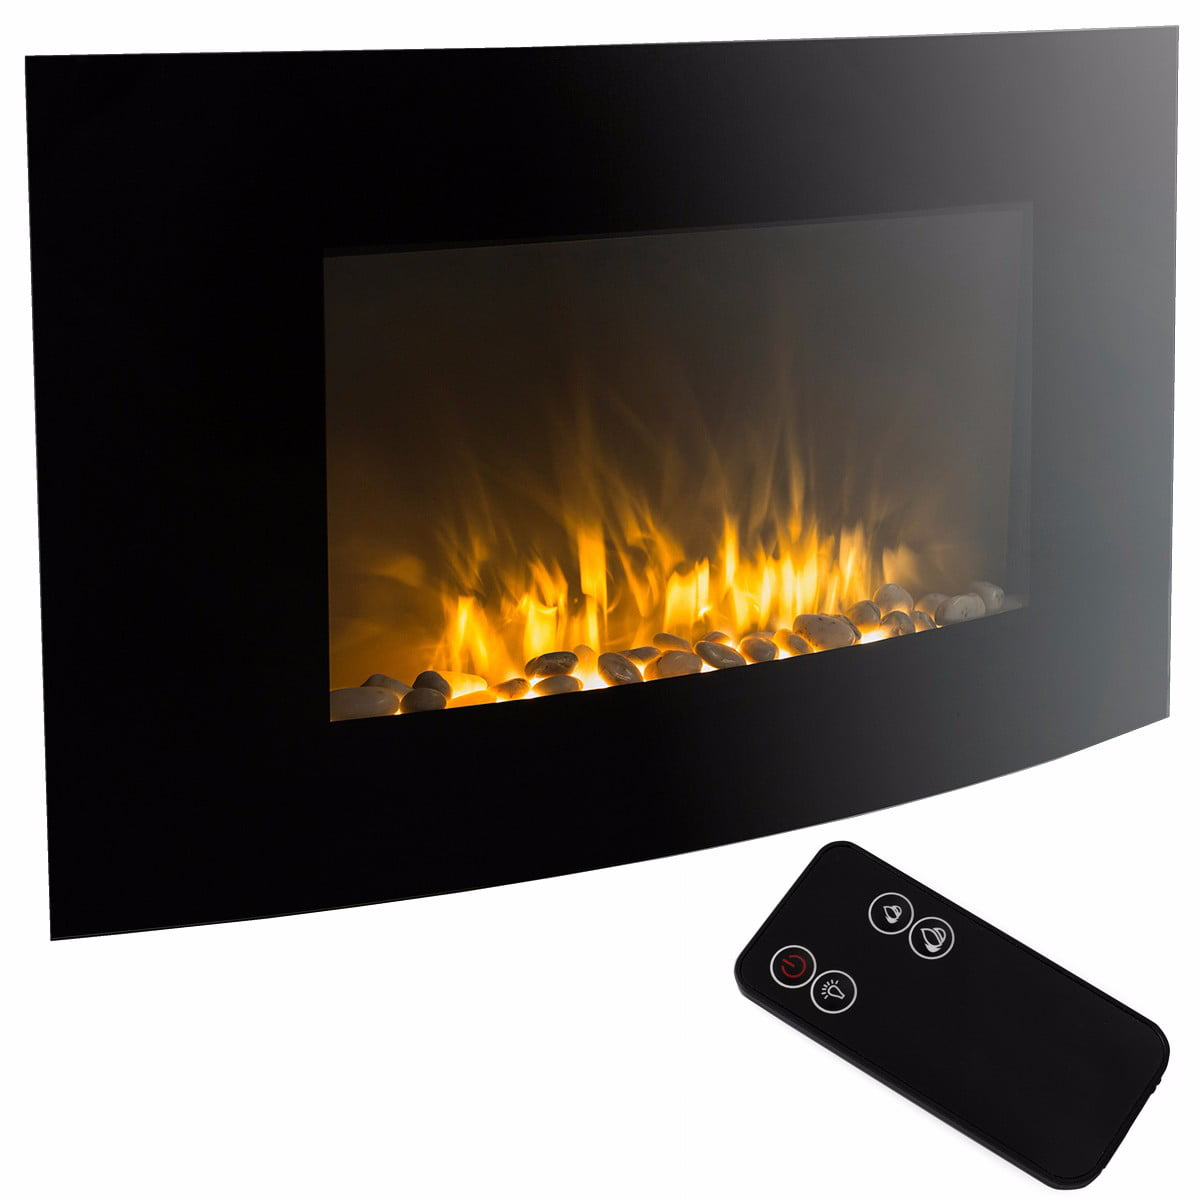 "Free Shipping. Buy 35"" Electric Fireplace 1500W Heat Adjustable Electric Wall Mount Heater with Remote at Walmart.com"